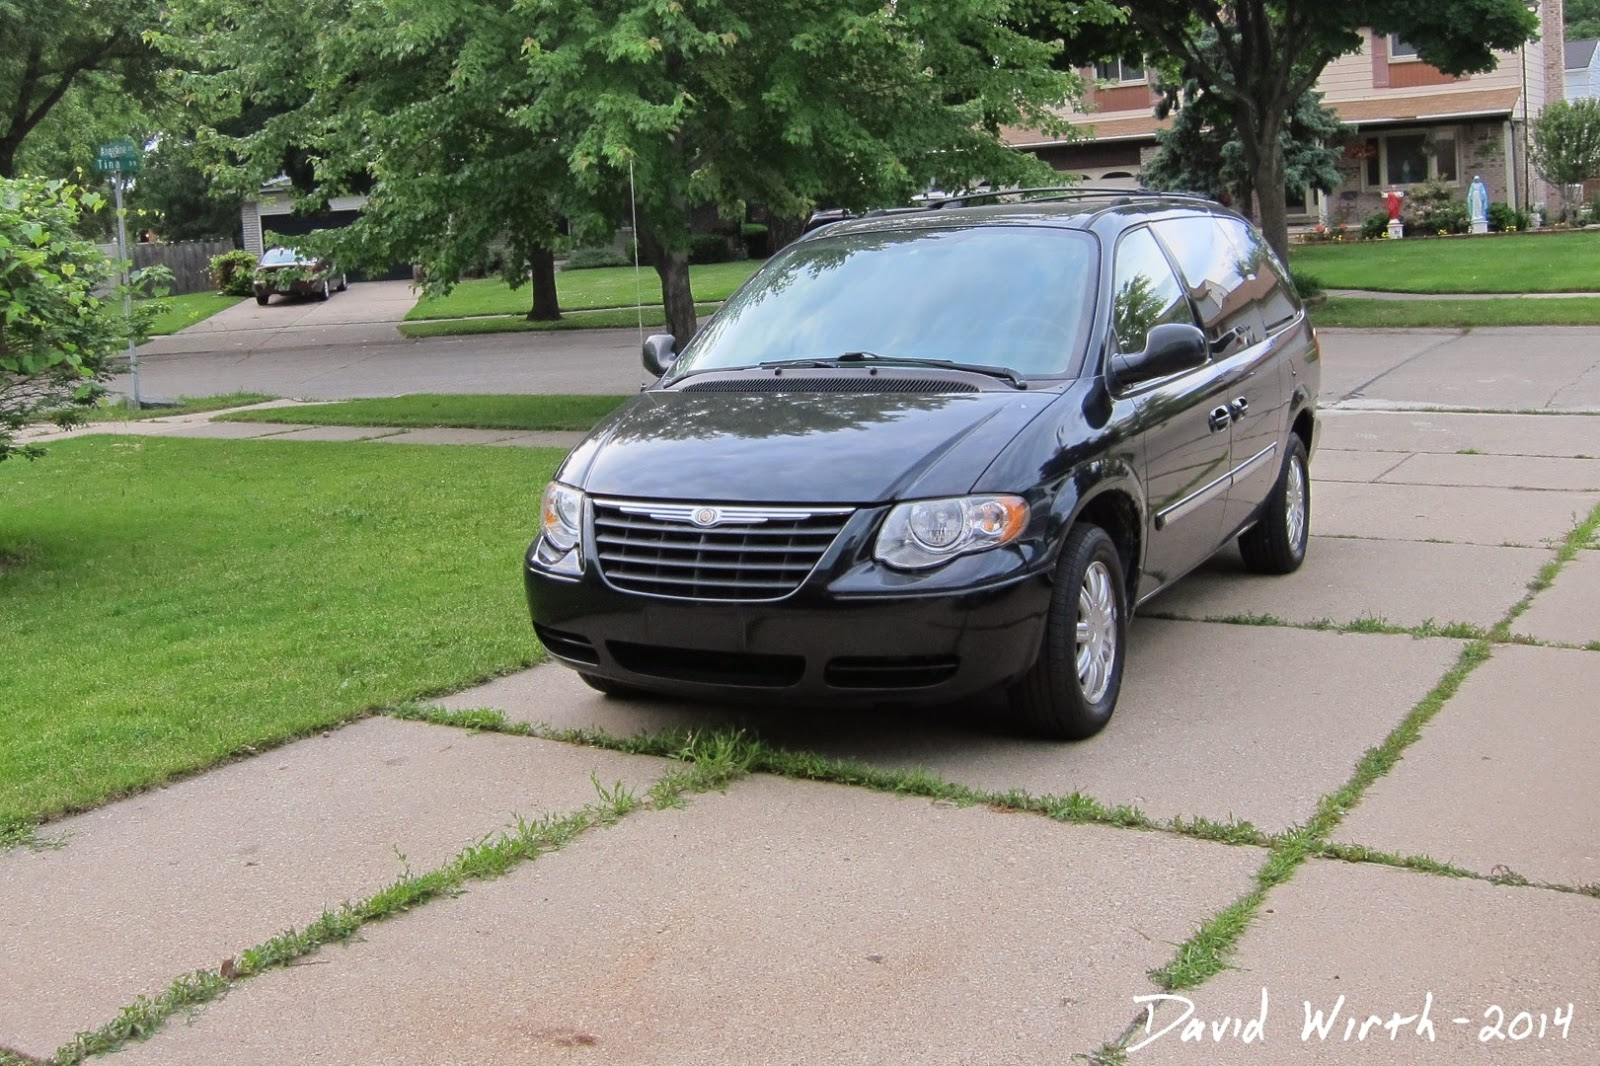 chrysler town and country, common problems, fix